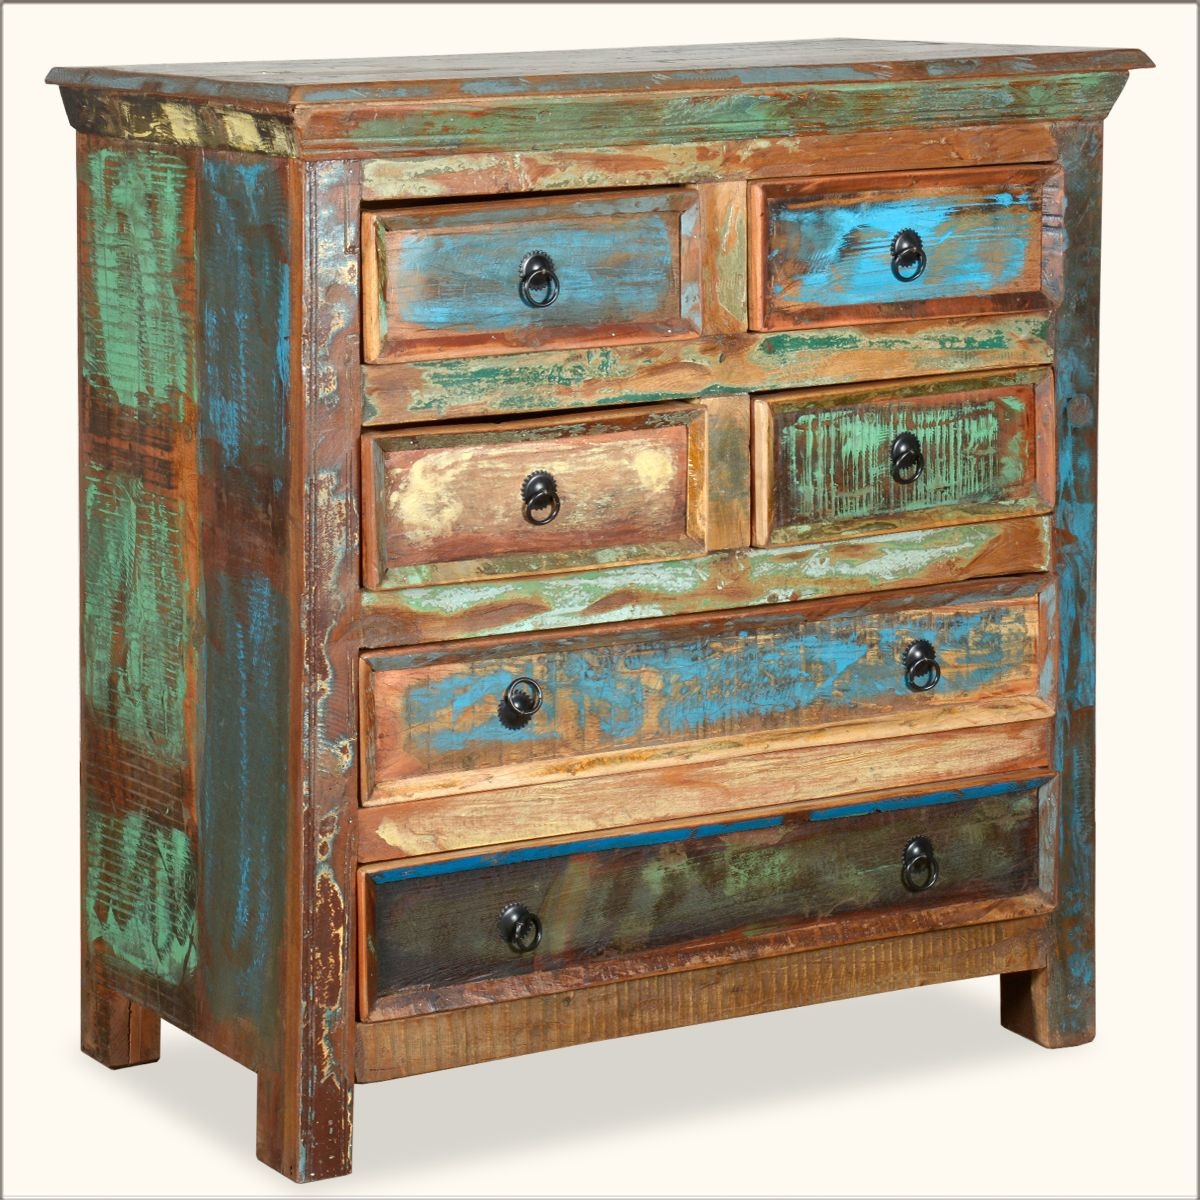 Appalachian Rustic Painted Old Wood 6 Drawer Bedroom Dresser